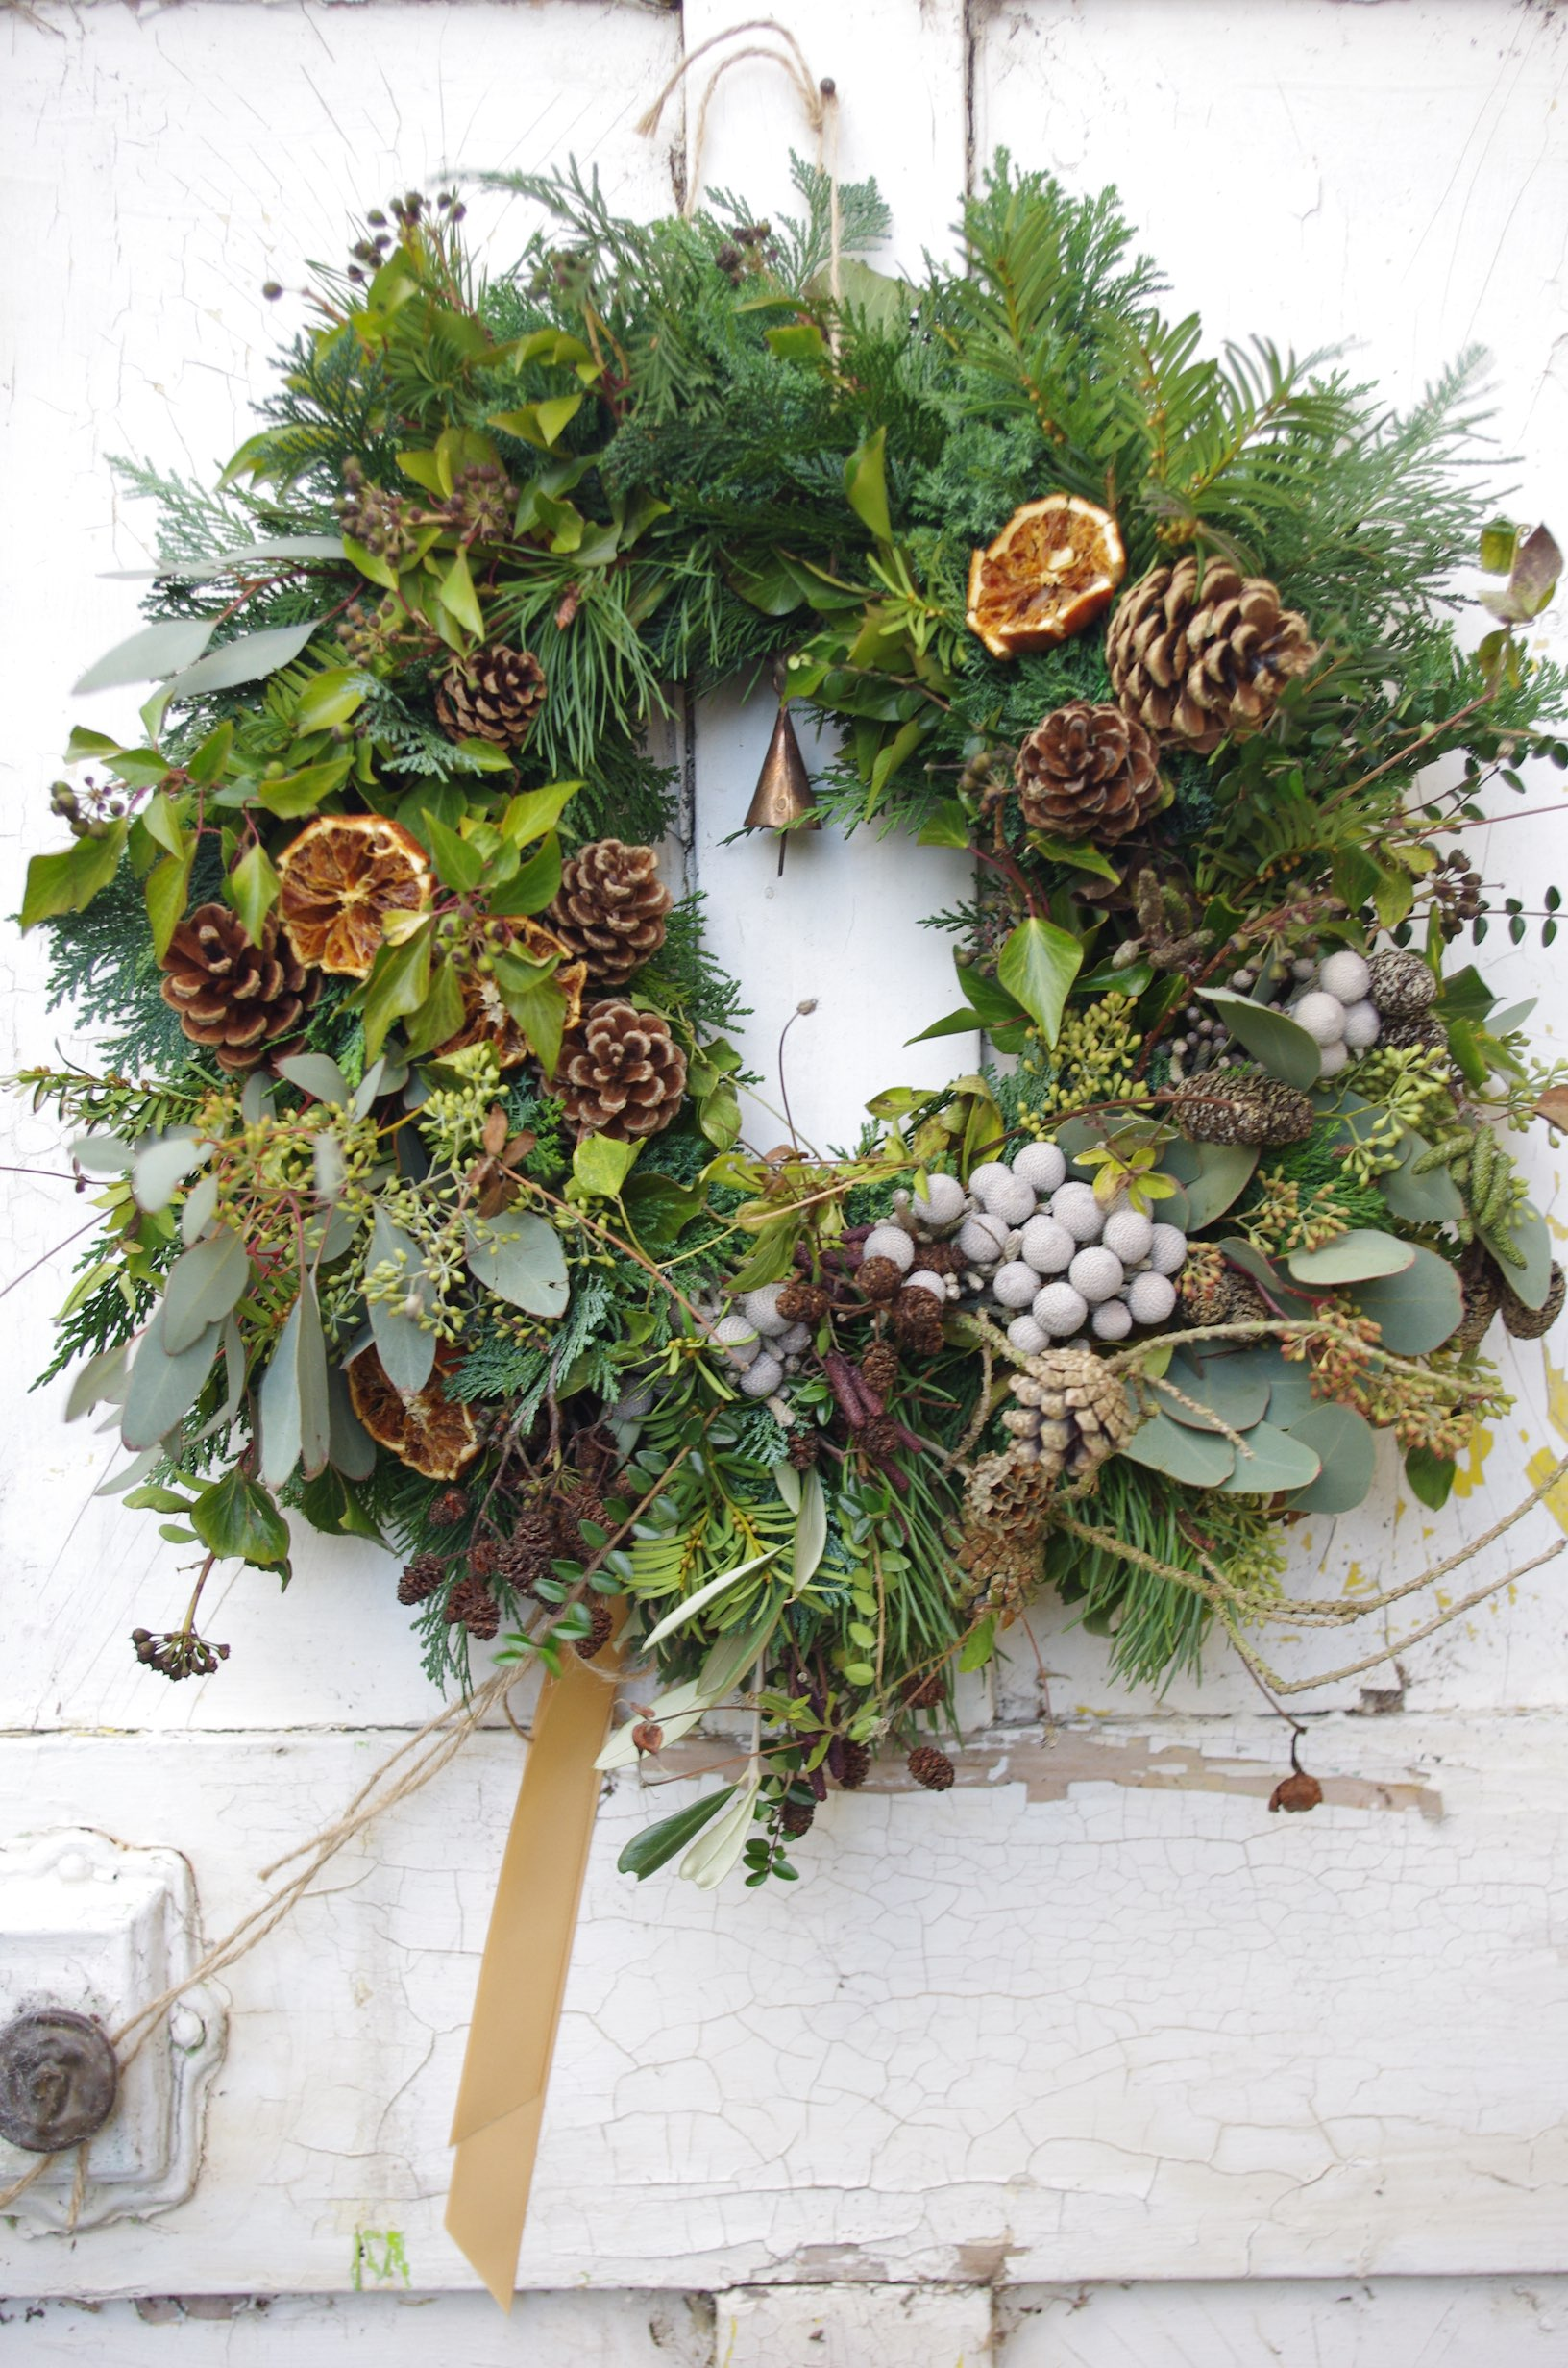 Cambridgeshire - Christmas Wreath Making Workshop